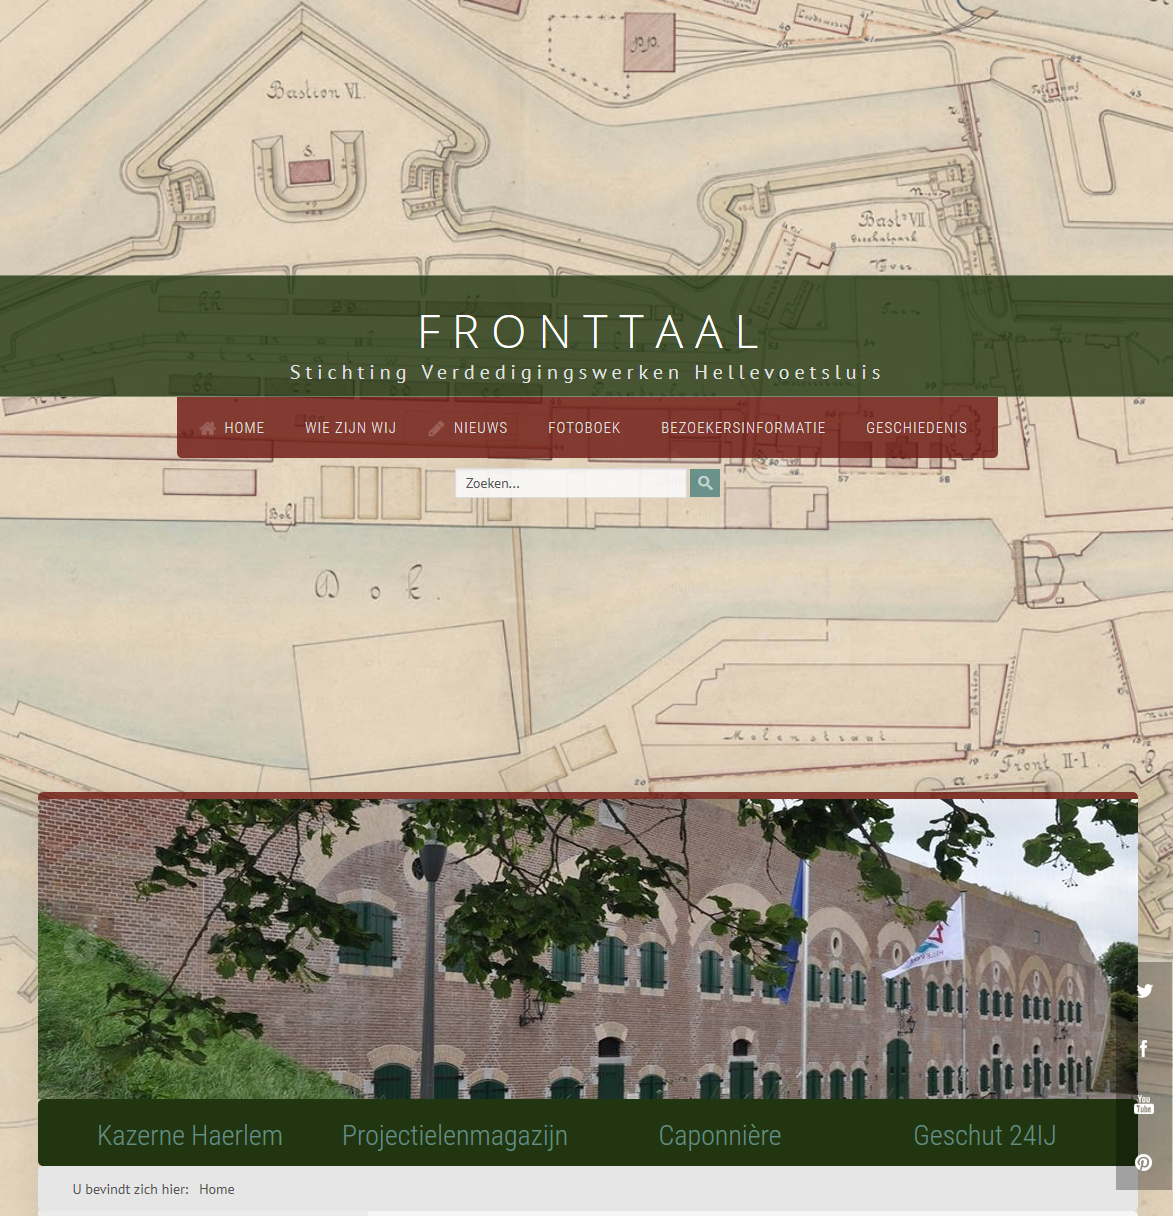 fronttaal